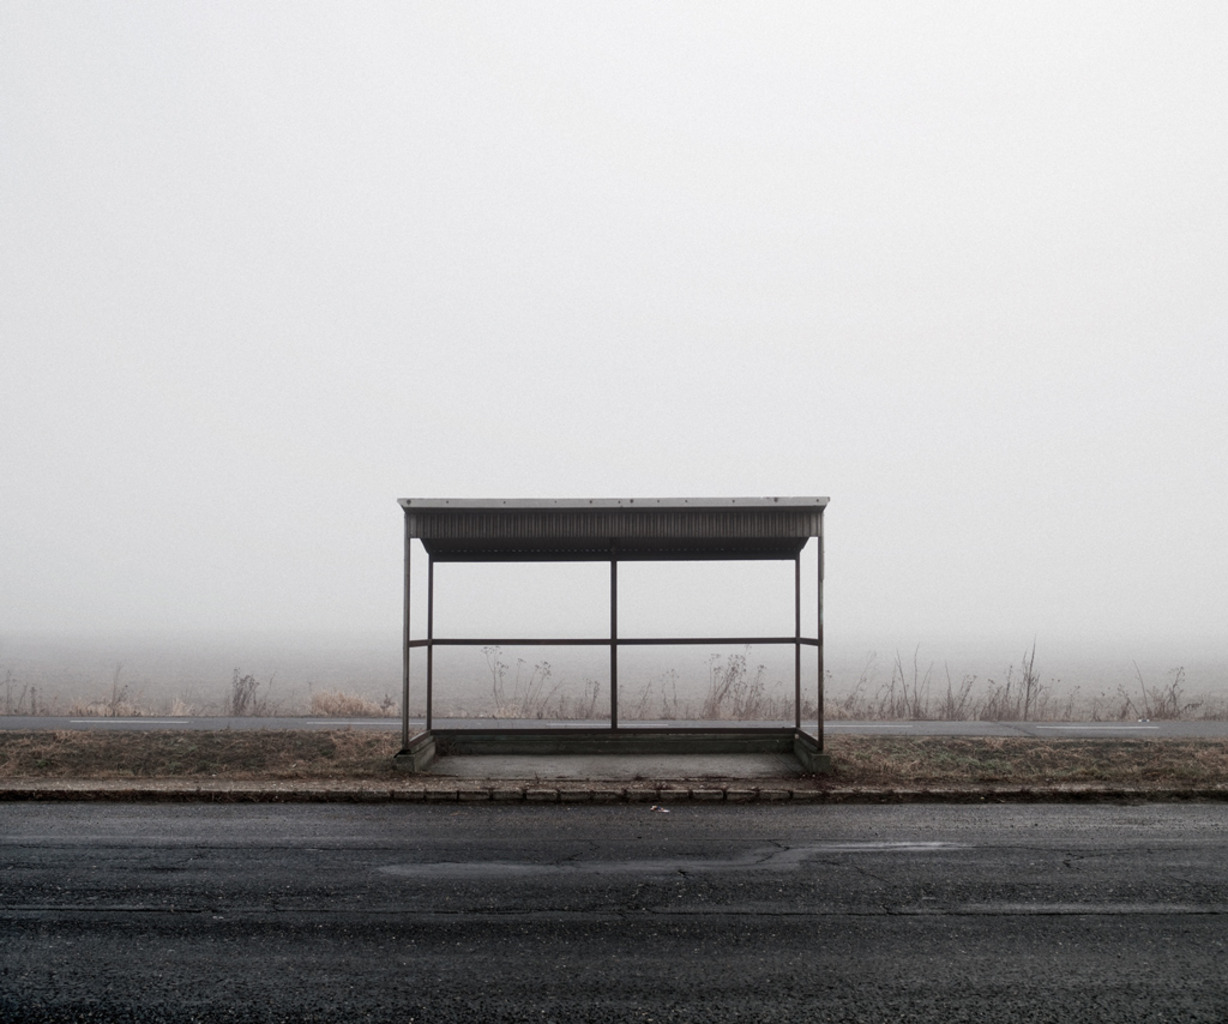 Bus Stop (North-East Hungary, 2011)